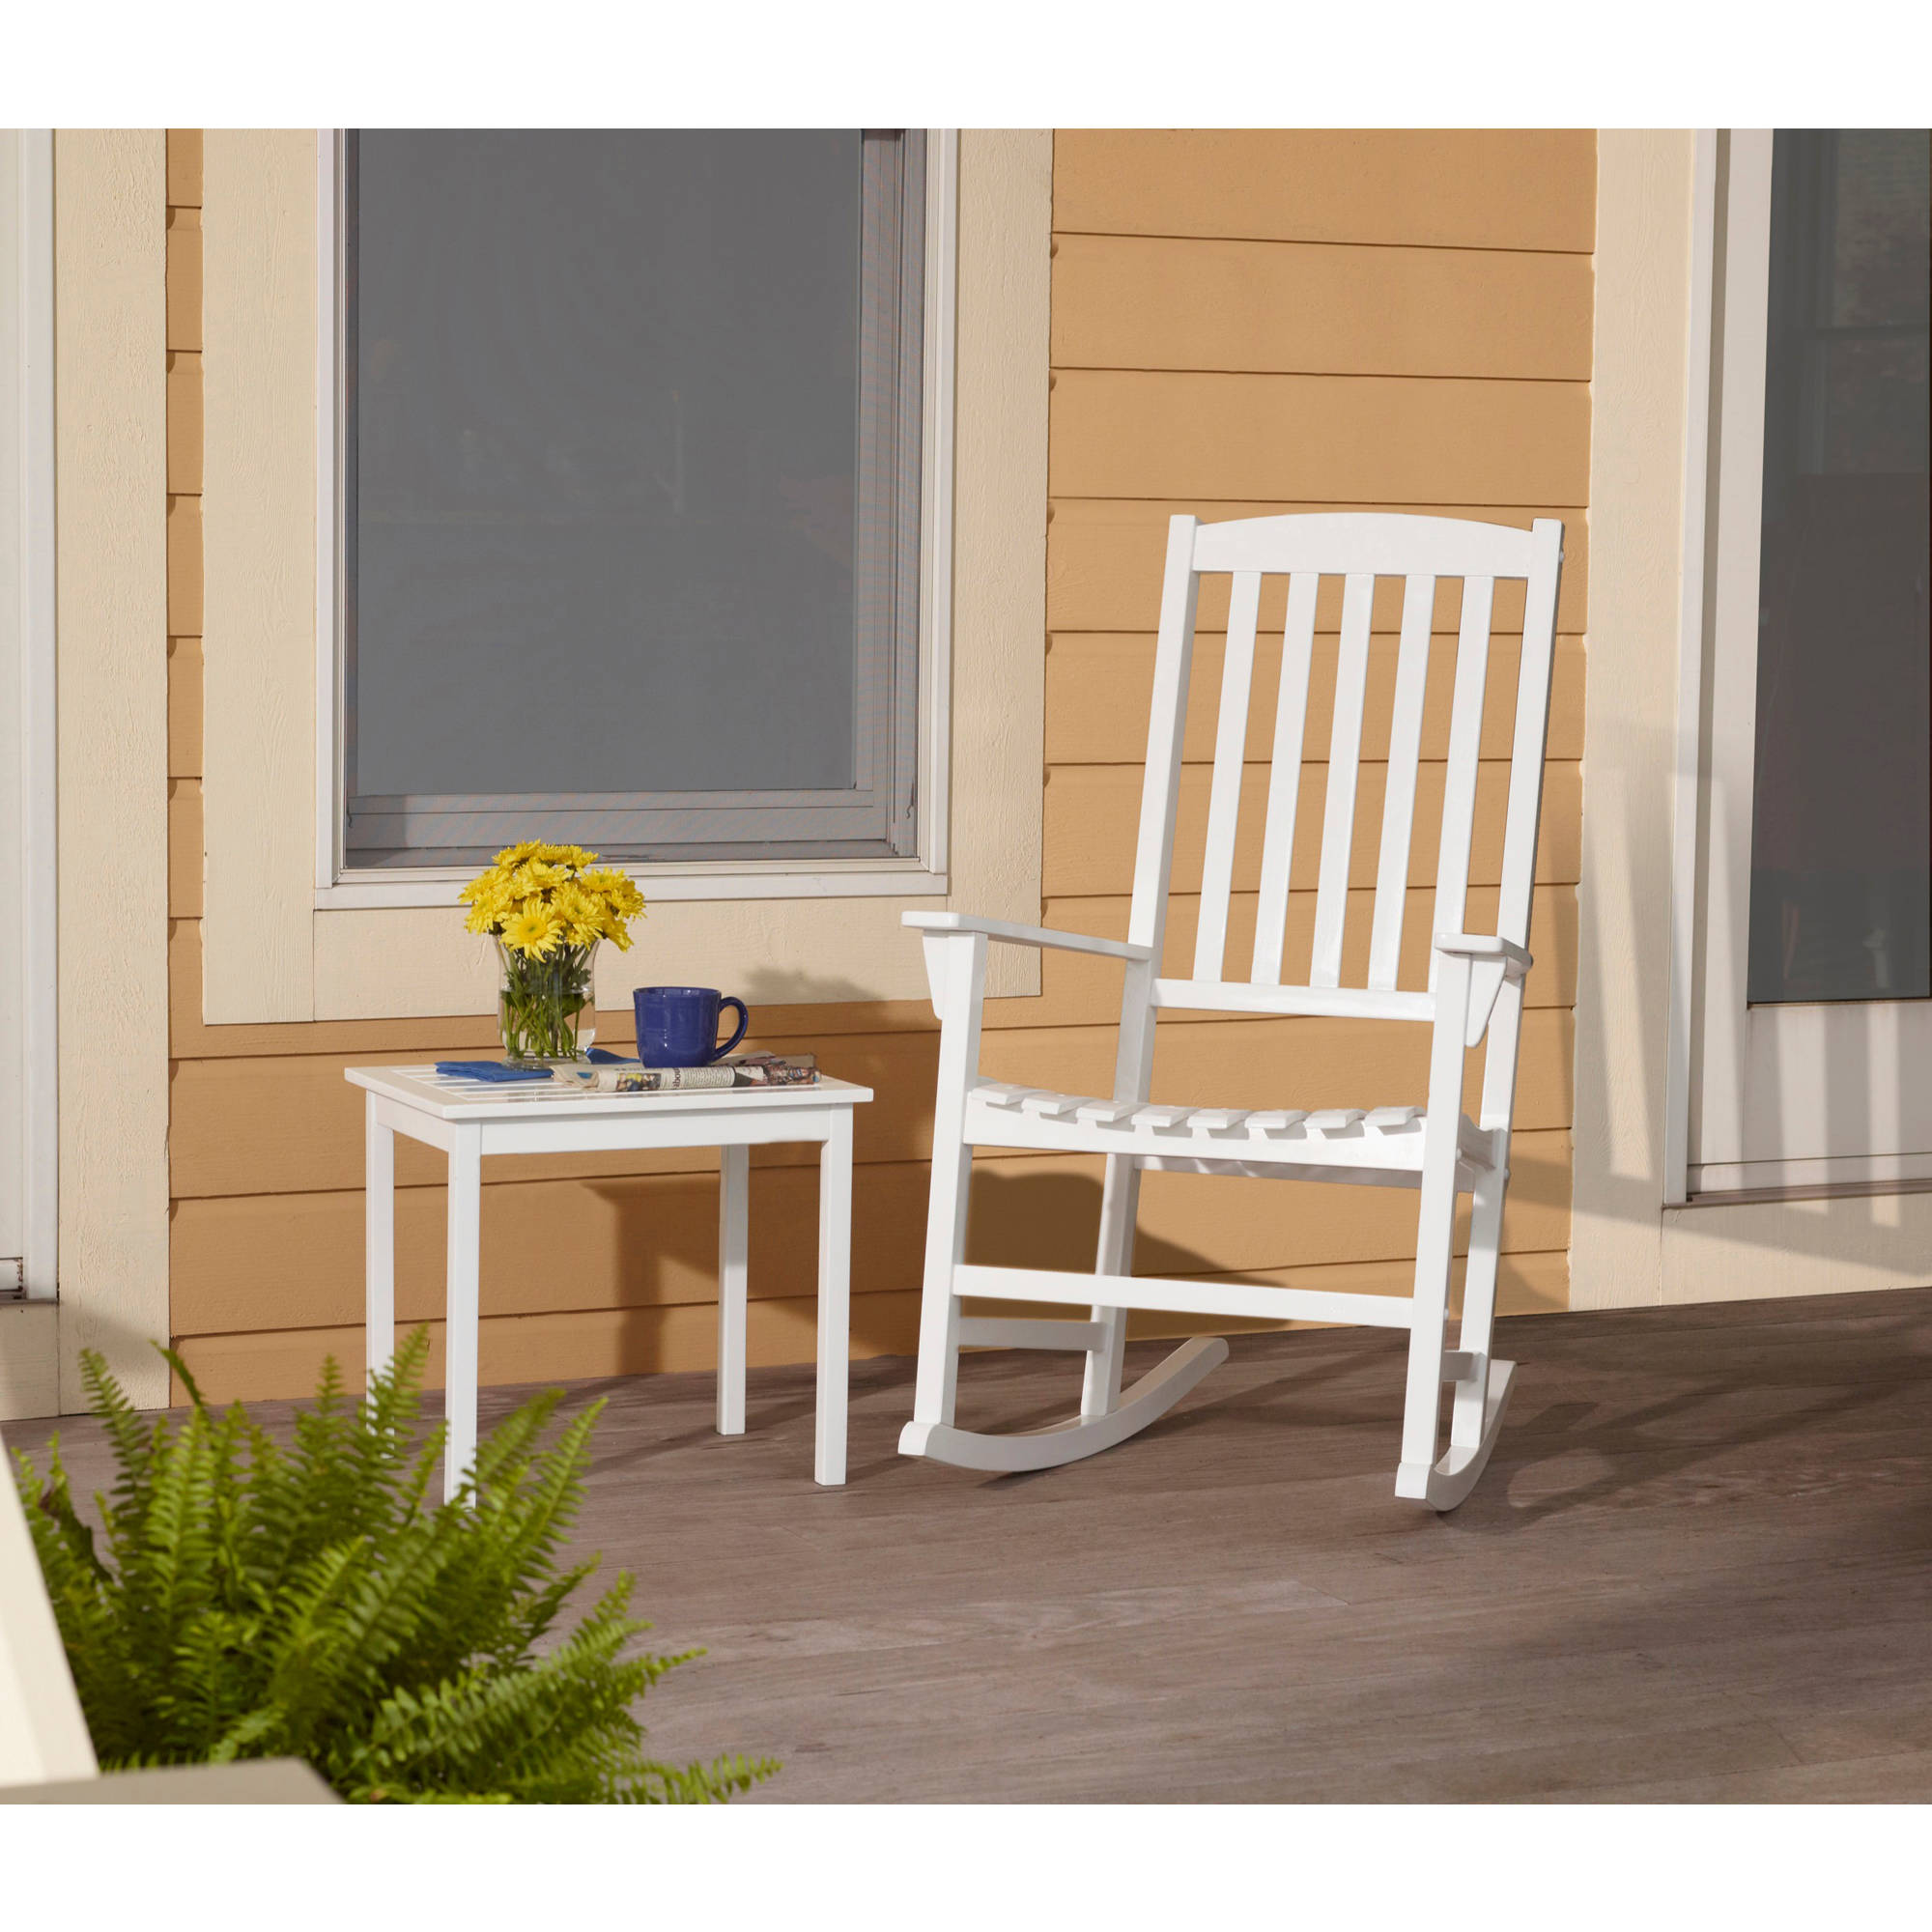 outdoor rocking chairs mainstays outdoor rocking chair, multiple colors - walmart.com FUEFHDS